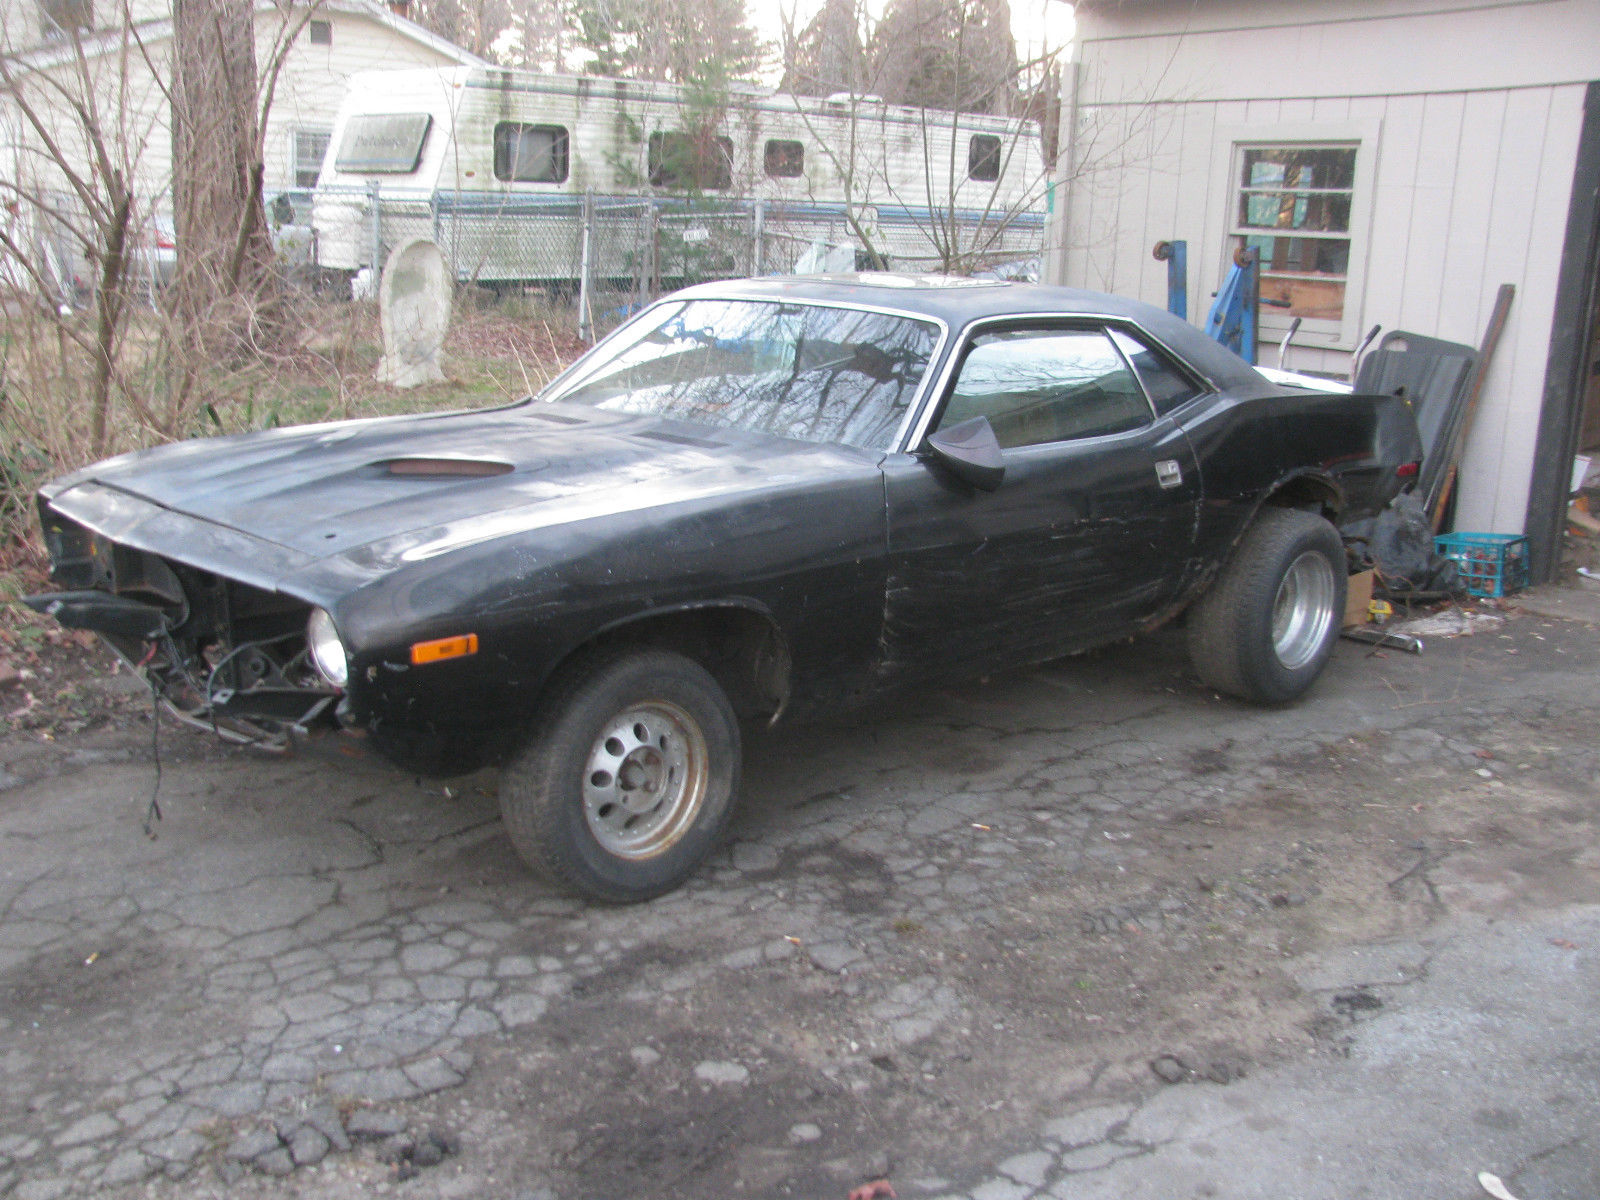 Plymouth Barracuda Project Car For Sale